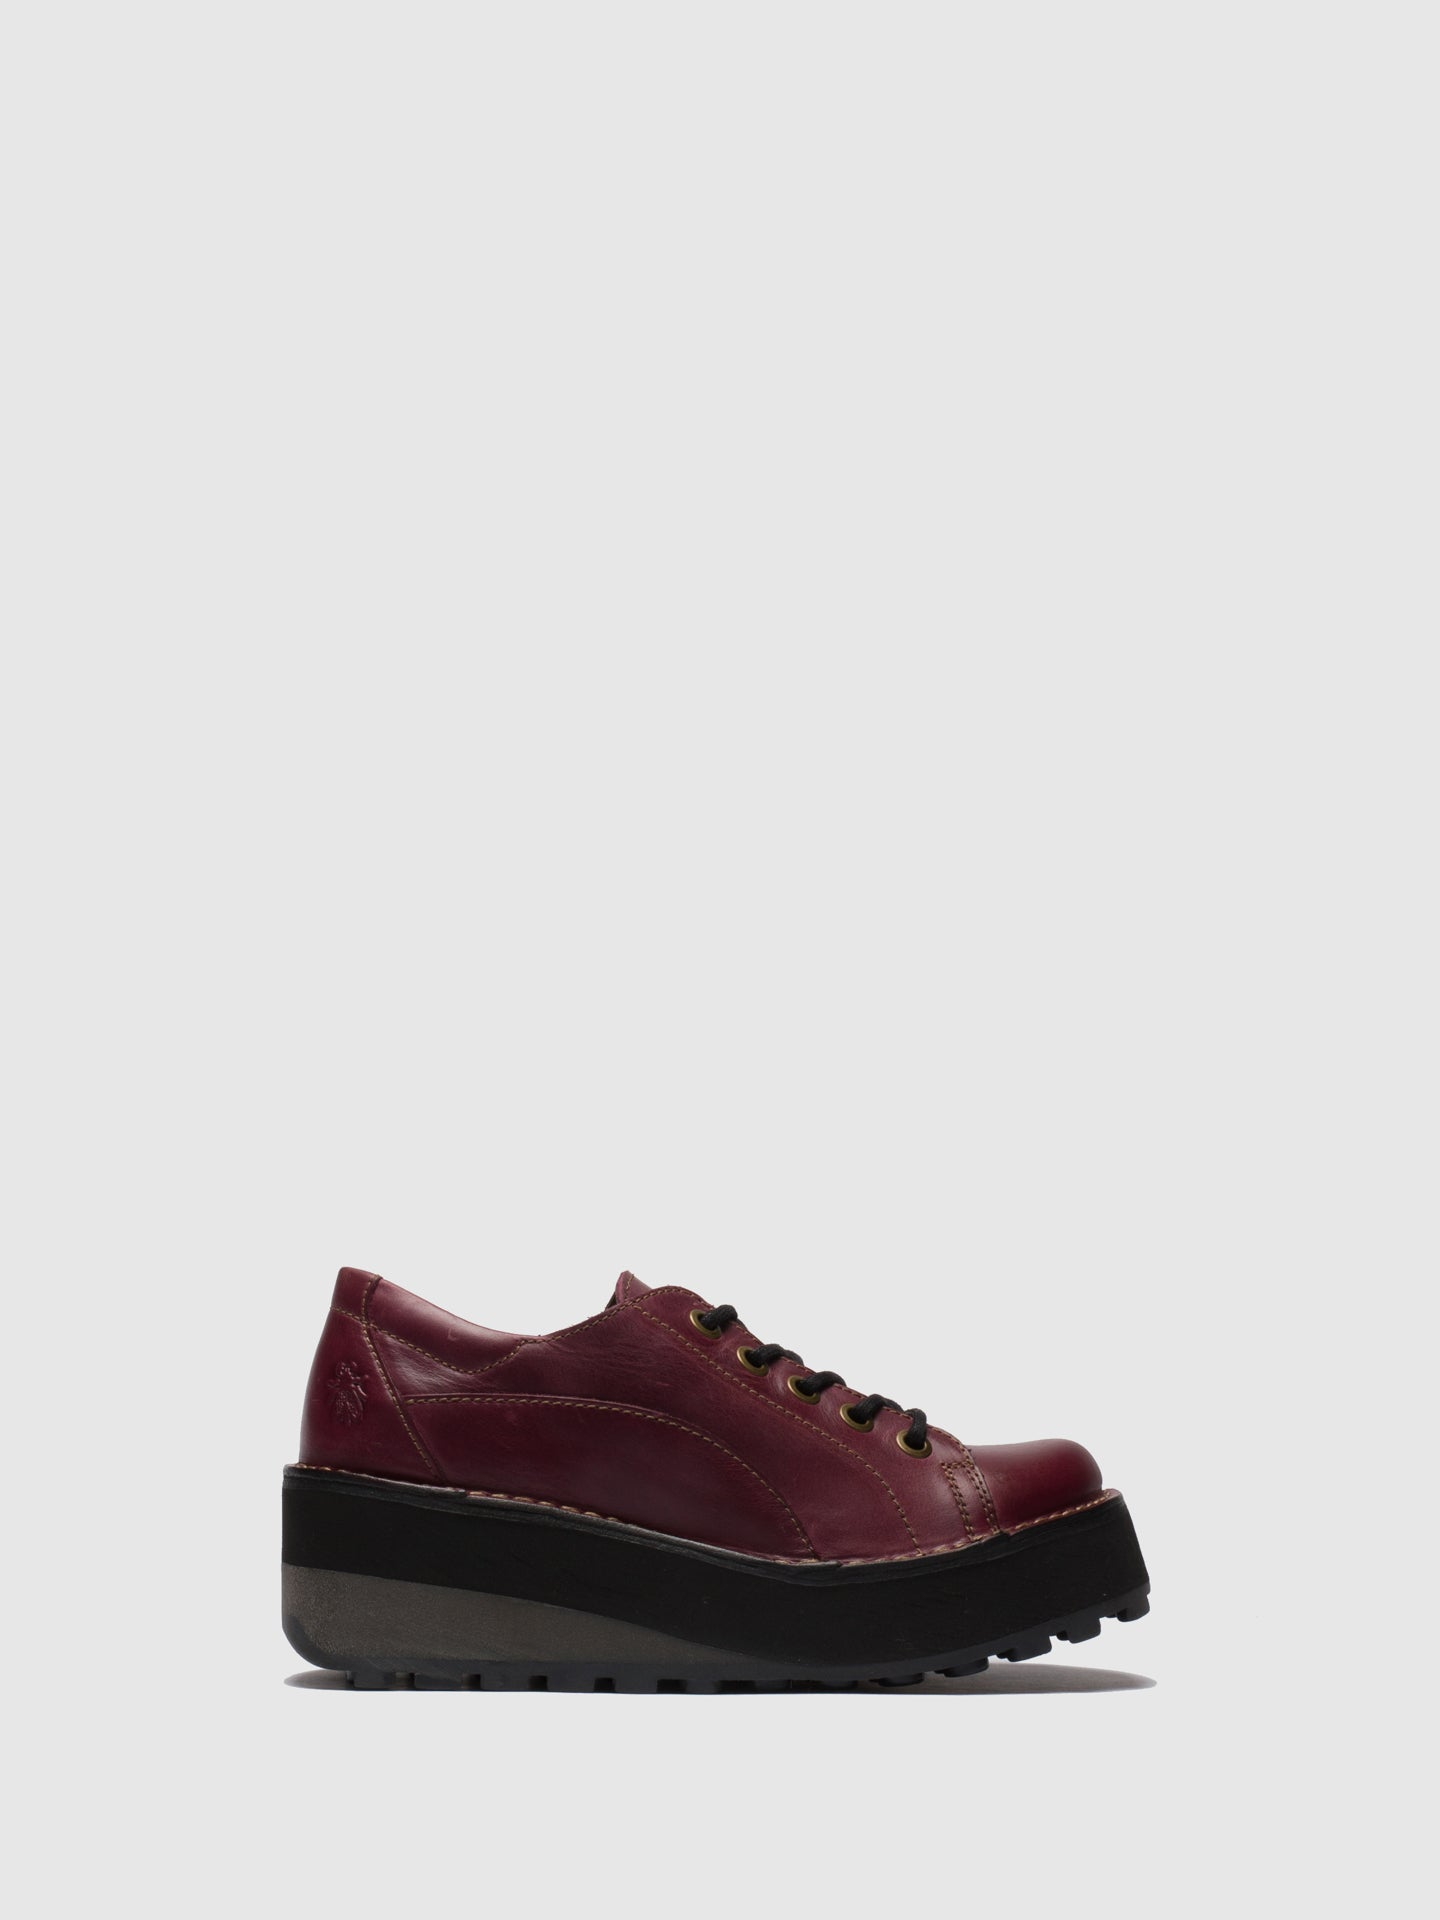 Fly London Purple Lace-up Shoes